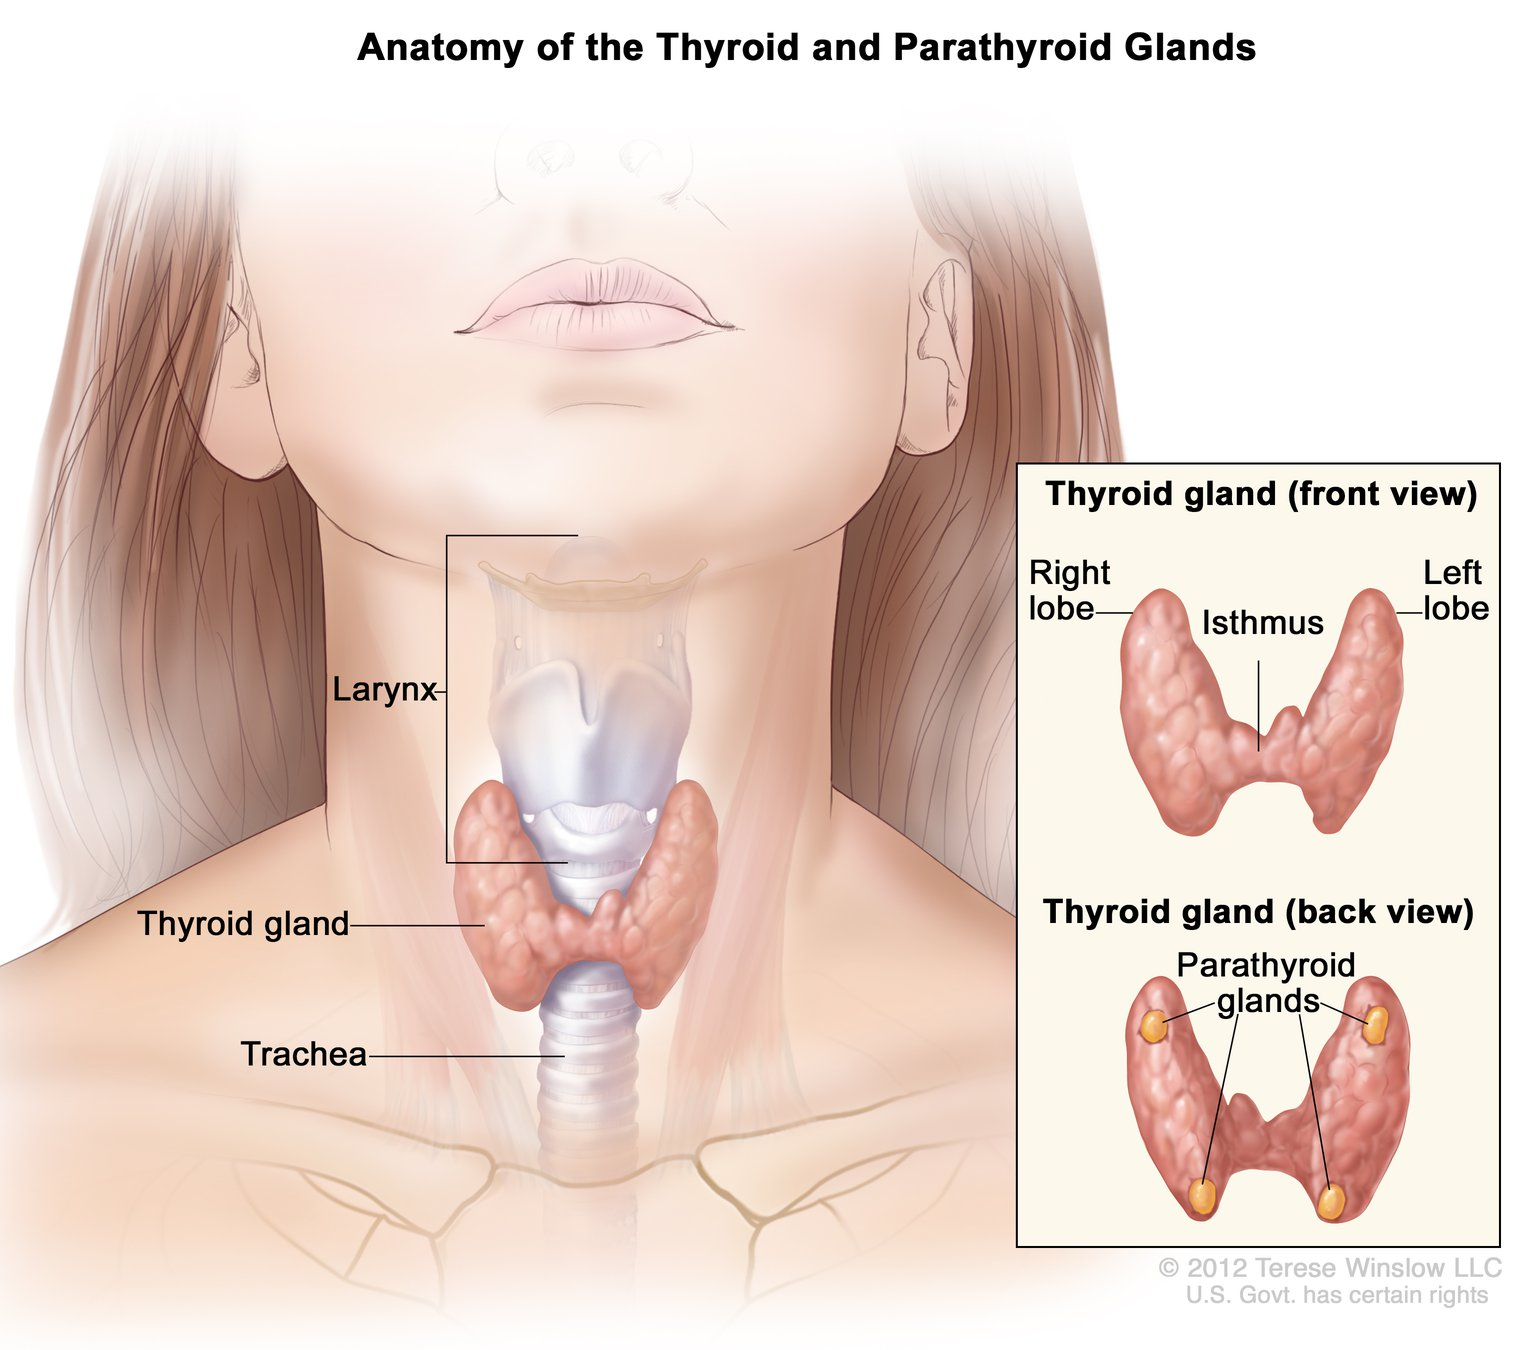 Illustration of the parathyroid glands and their location in the neck.